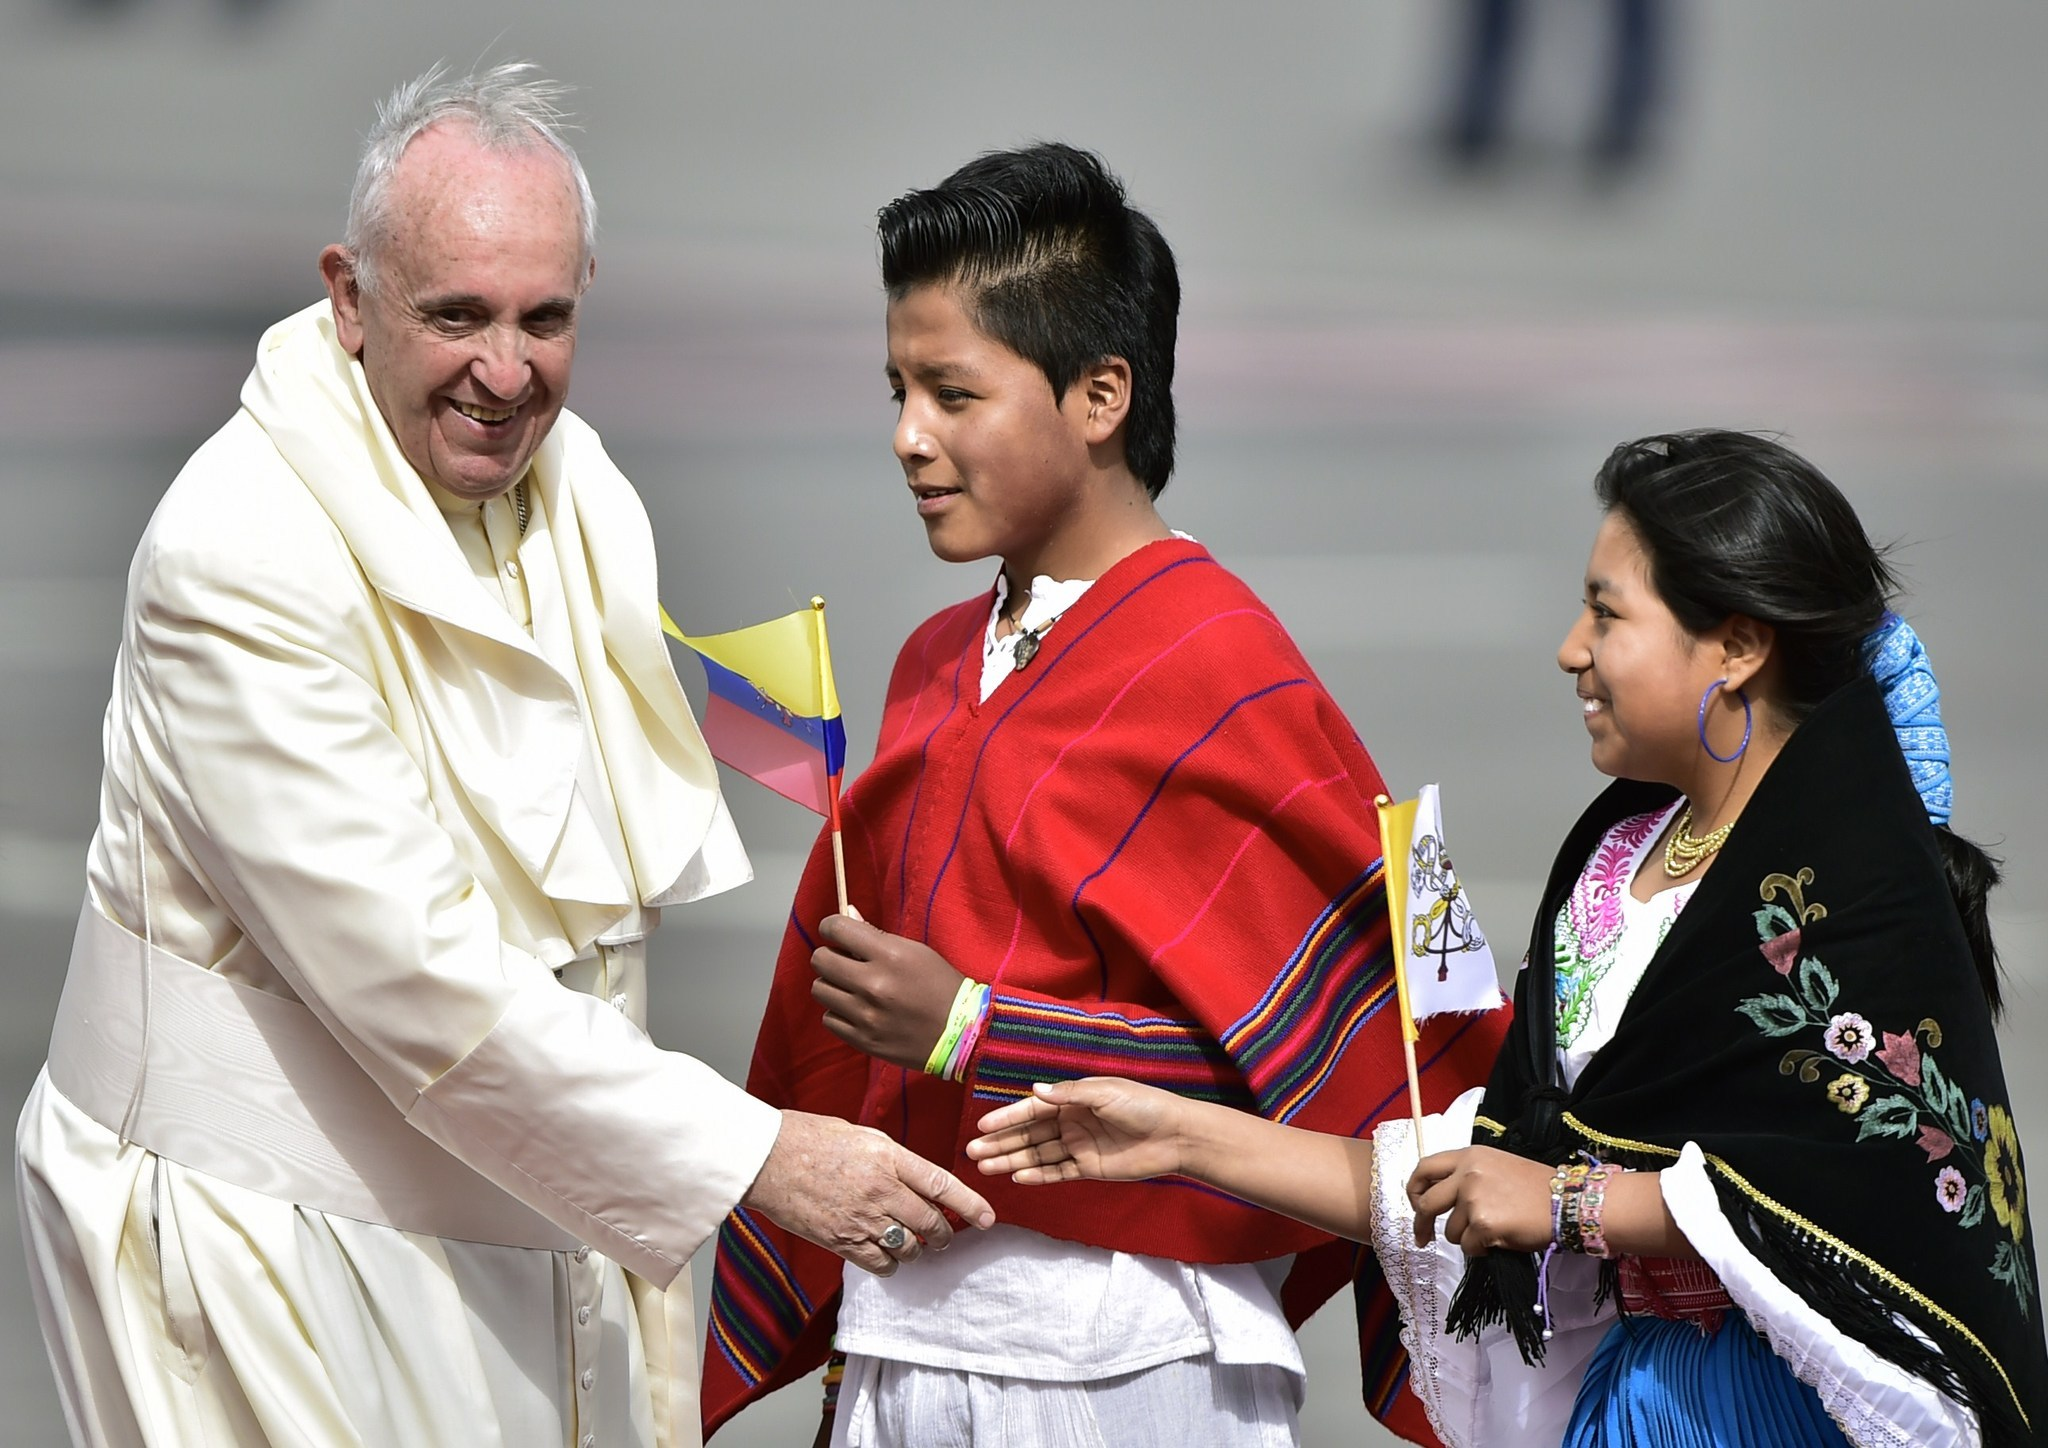 Hundreds of thousands hear pope praise families in Ecuador